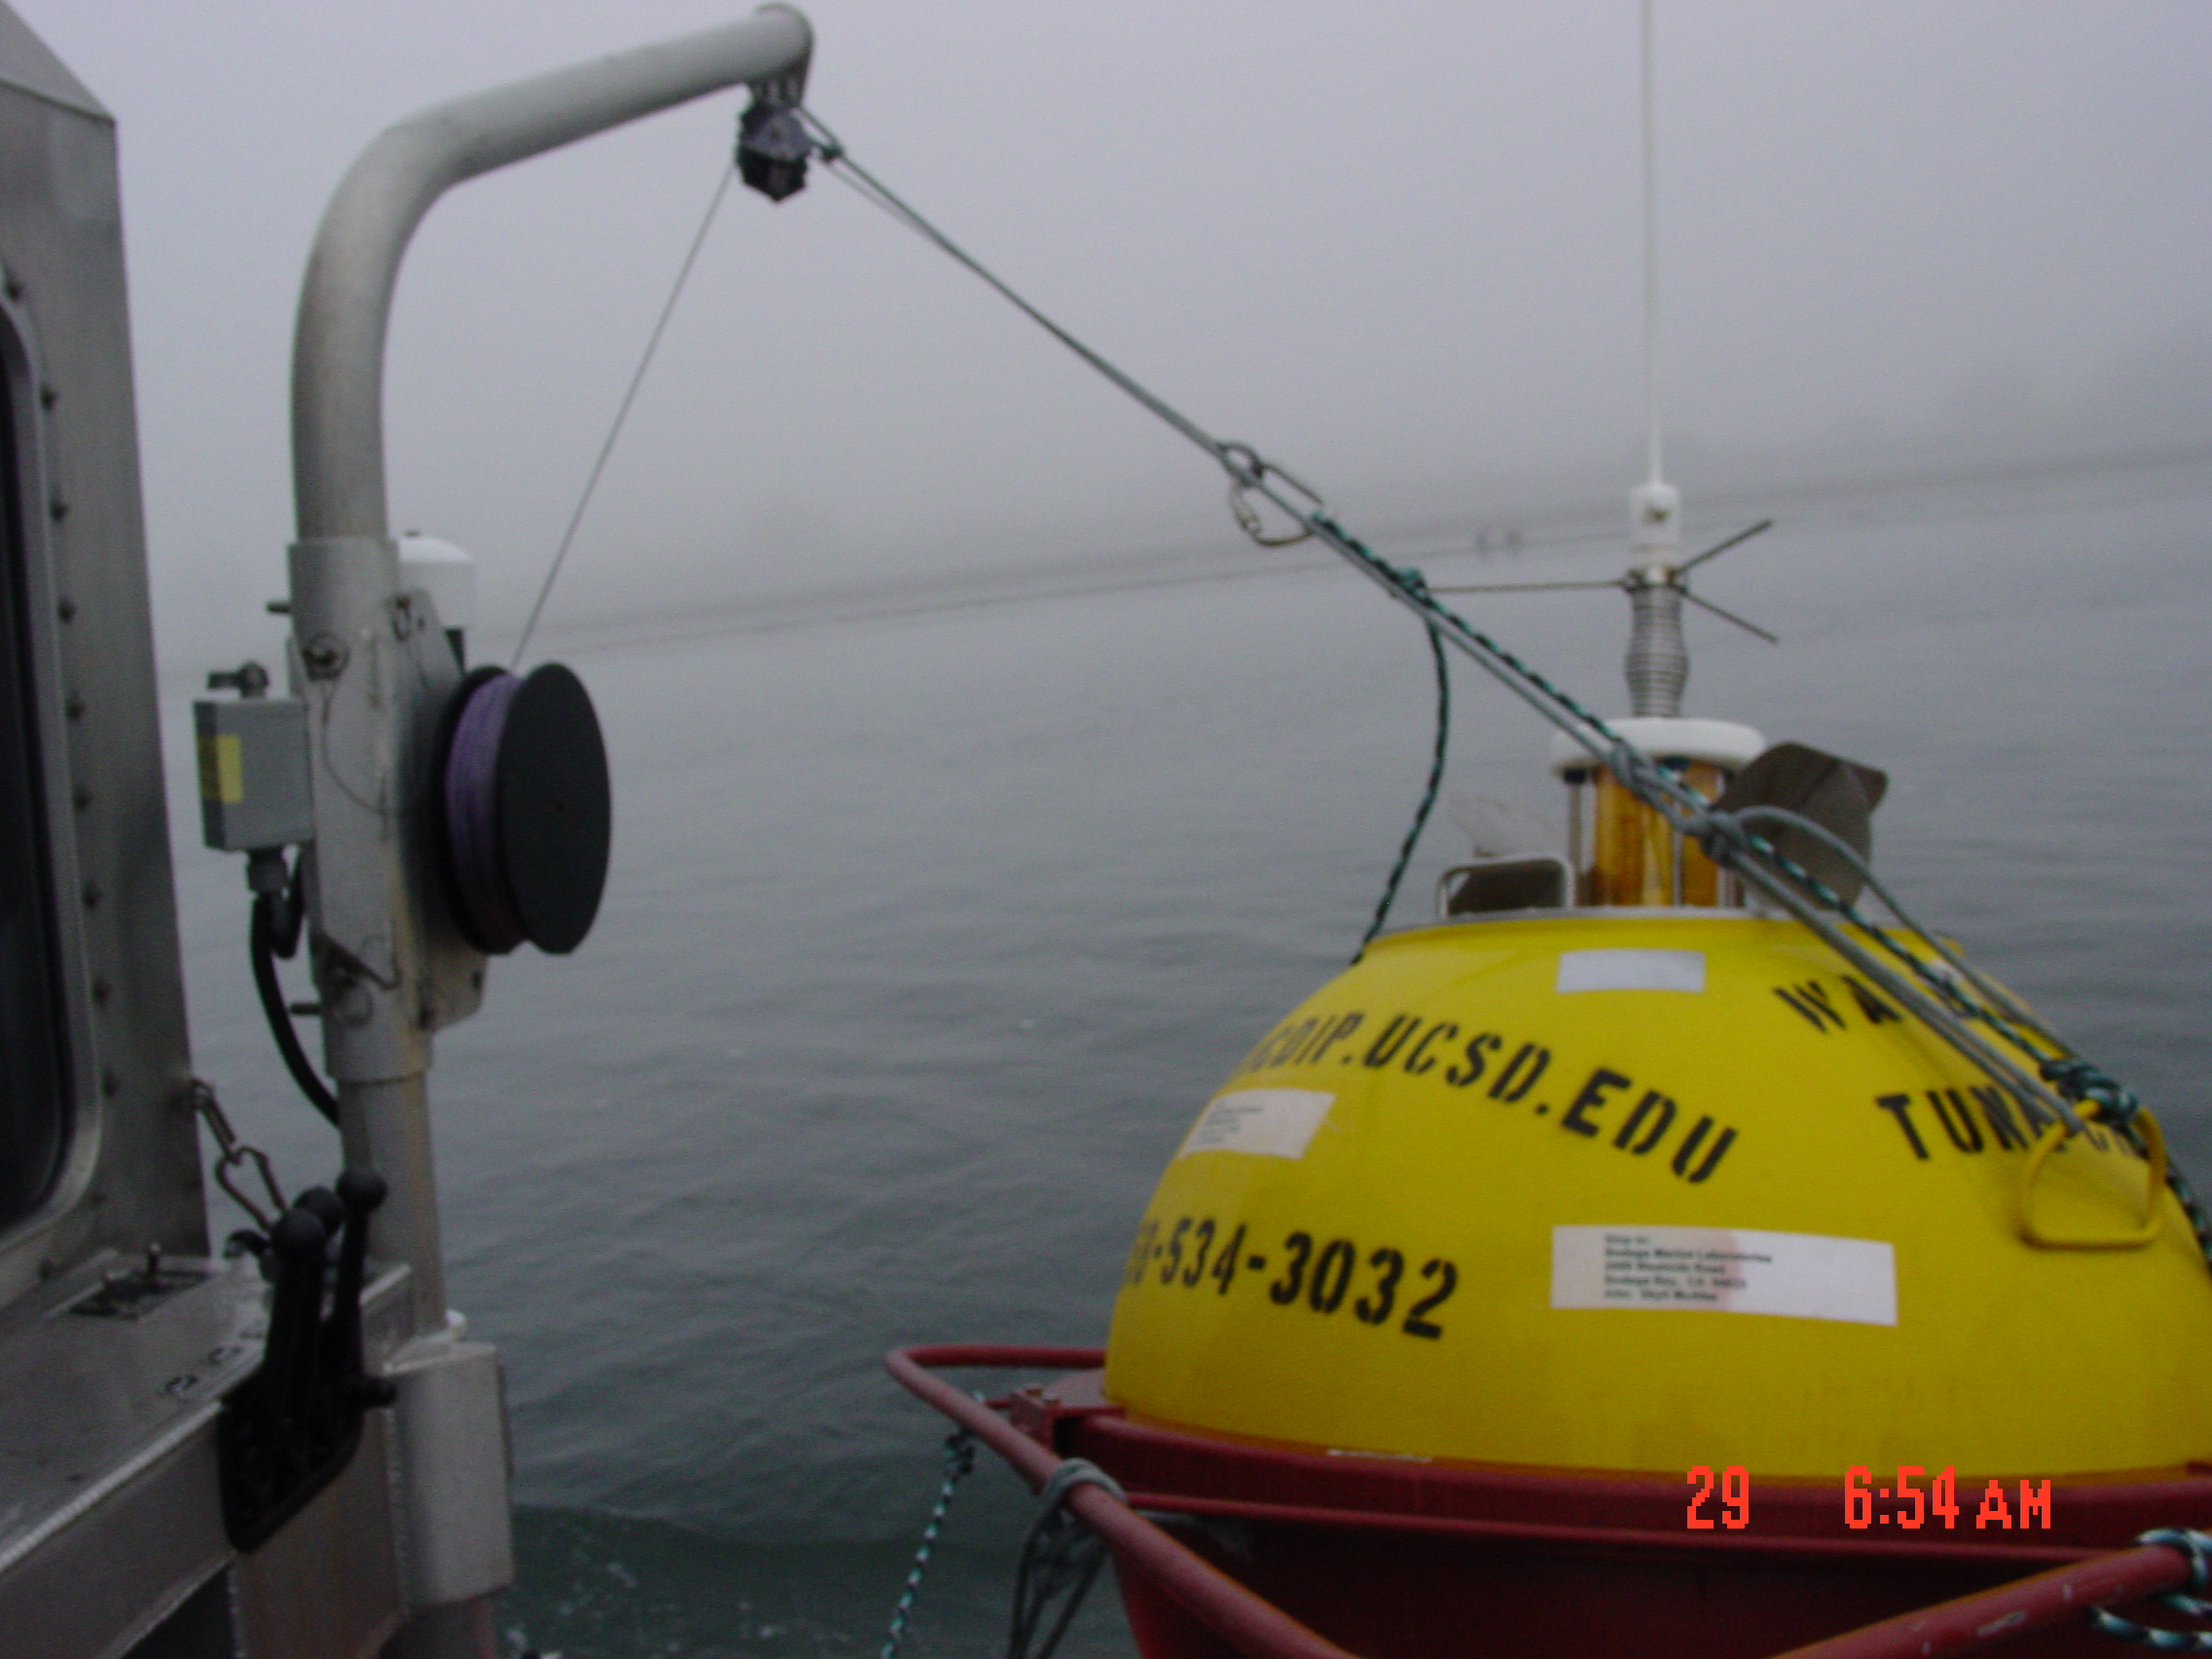 Buoy attached to davit